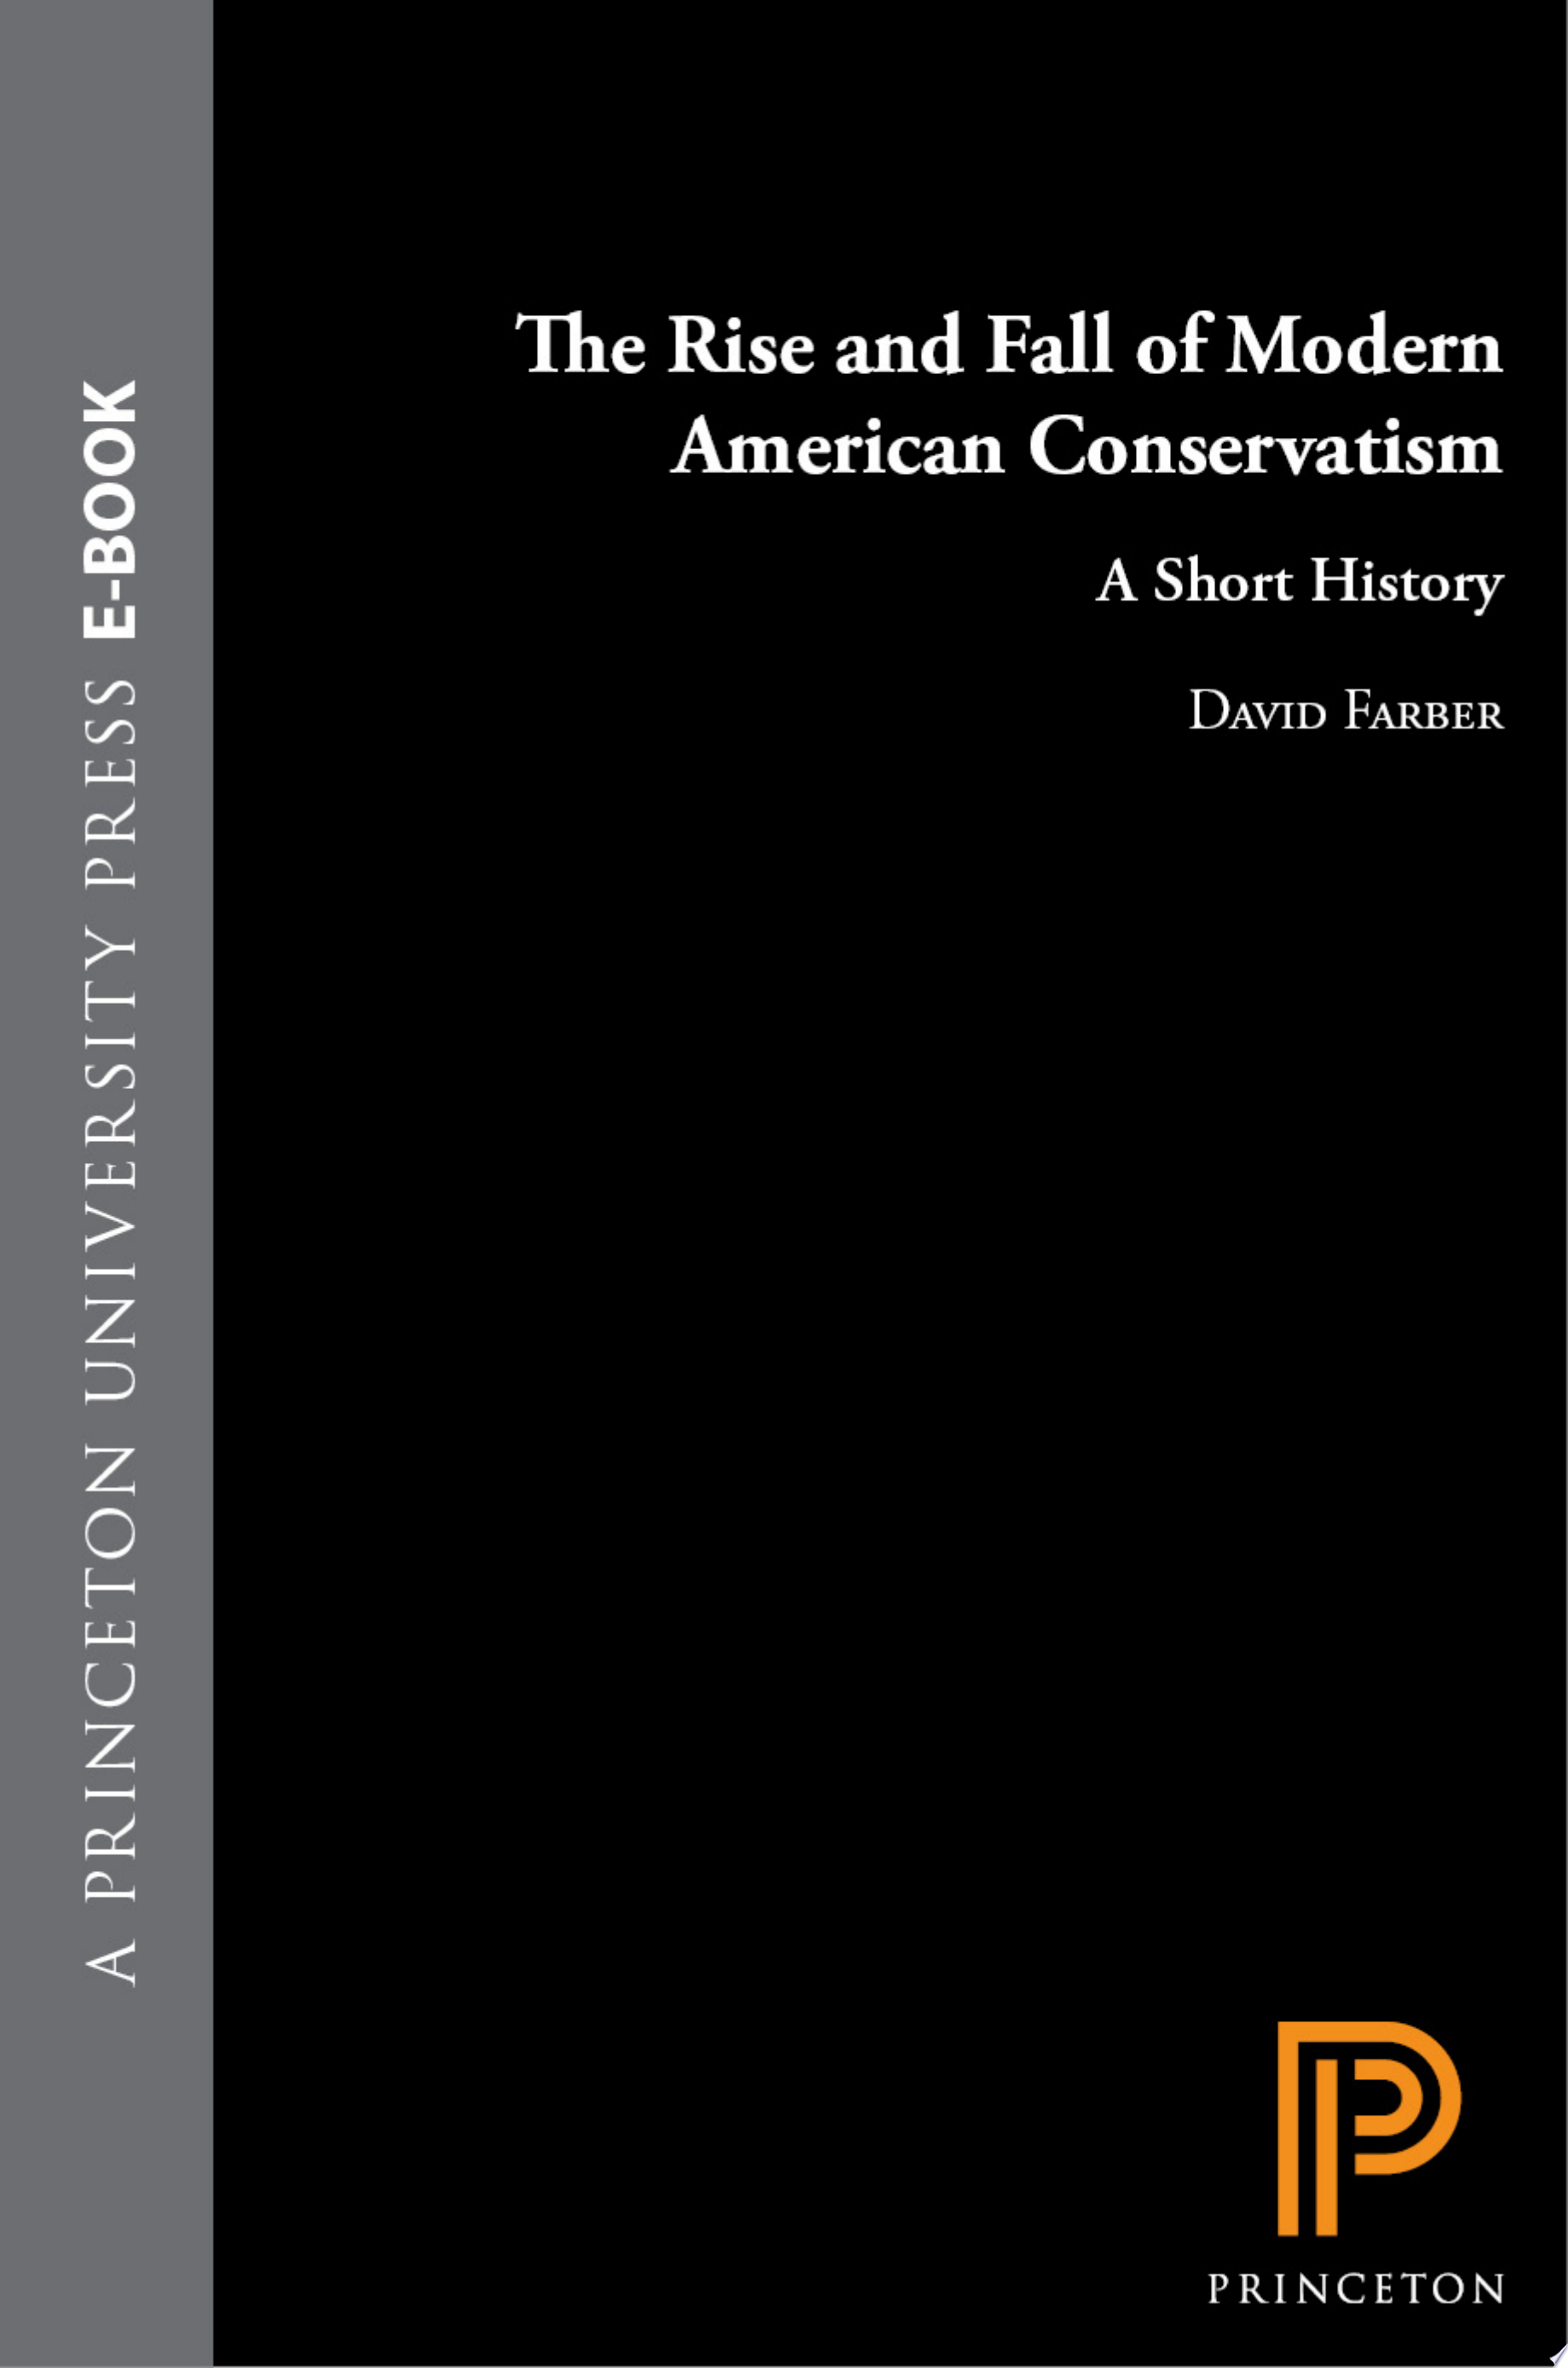 The Rise and Fall of Modern American Conservatism